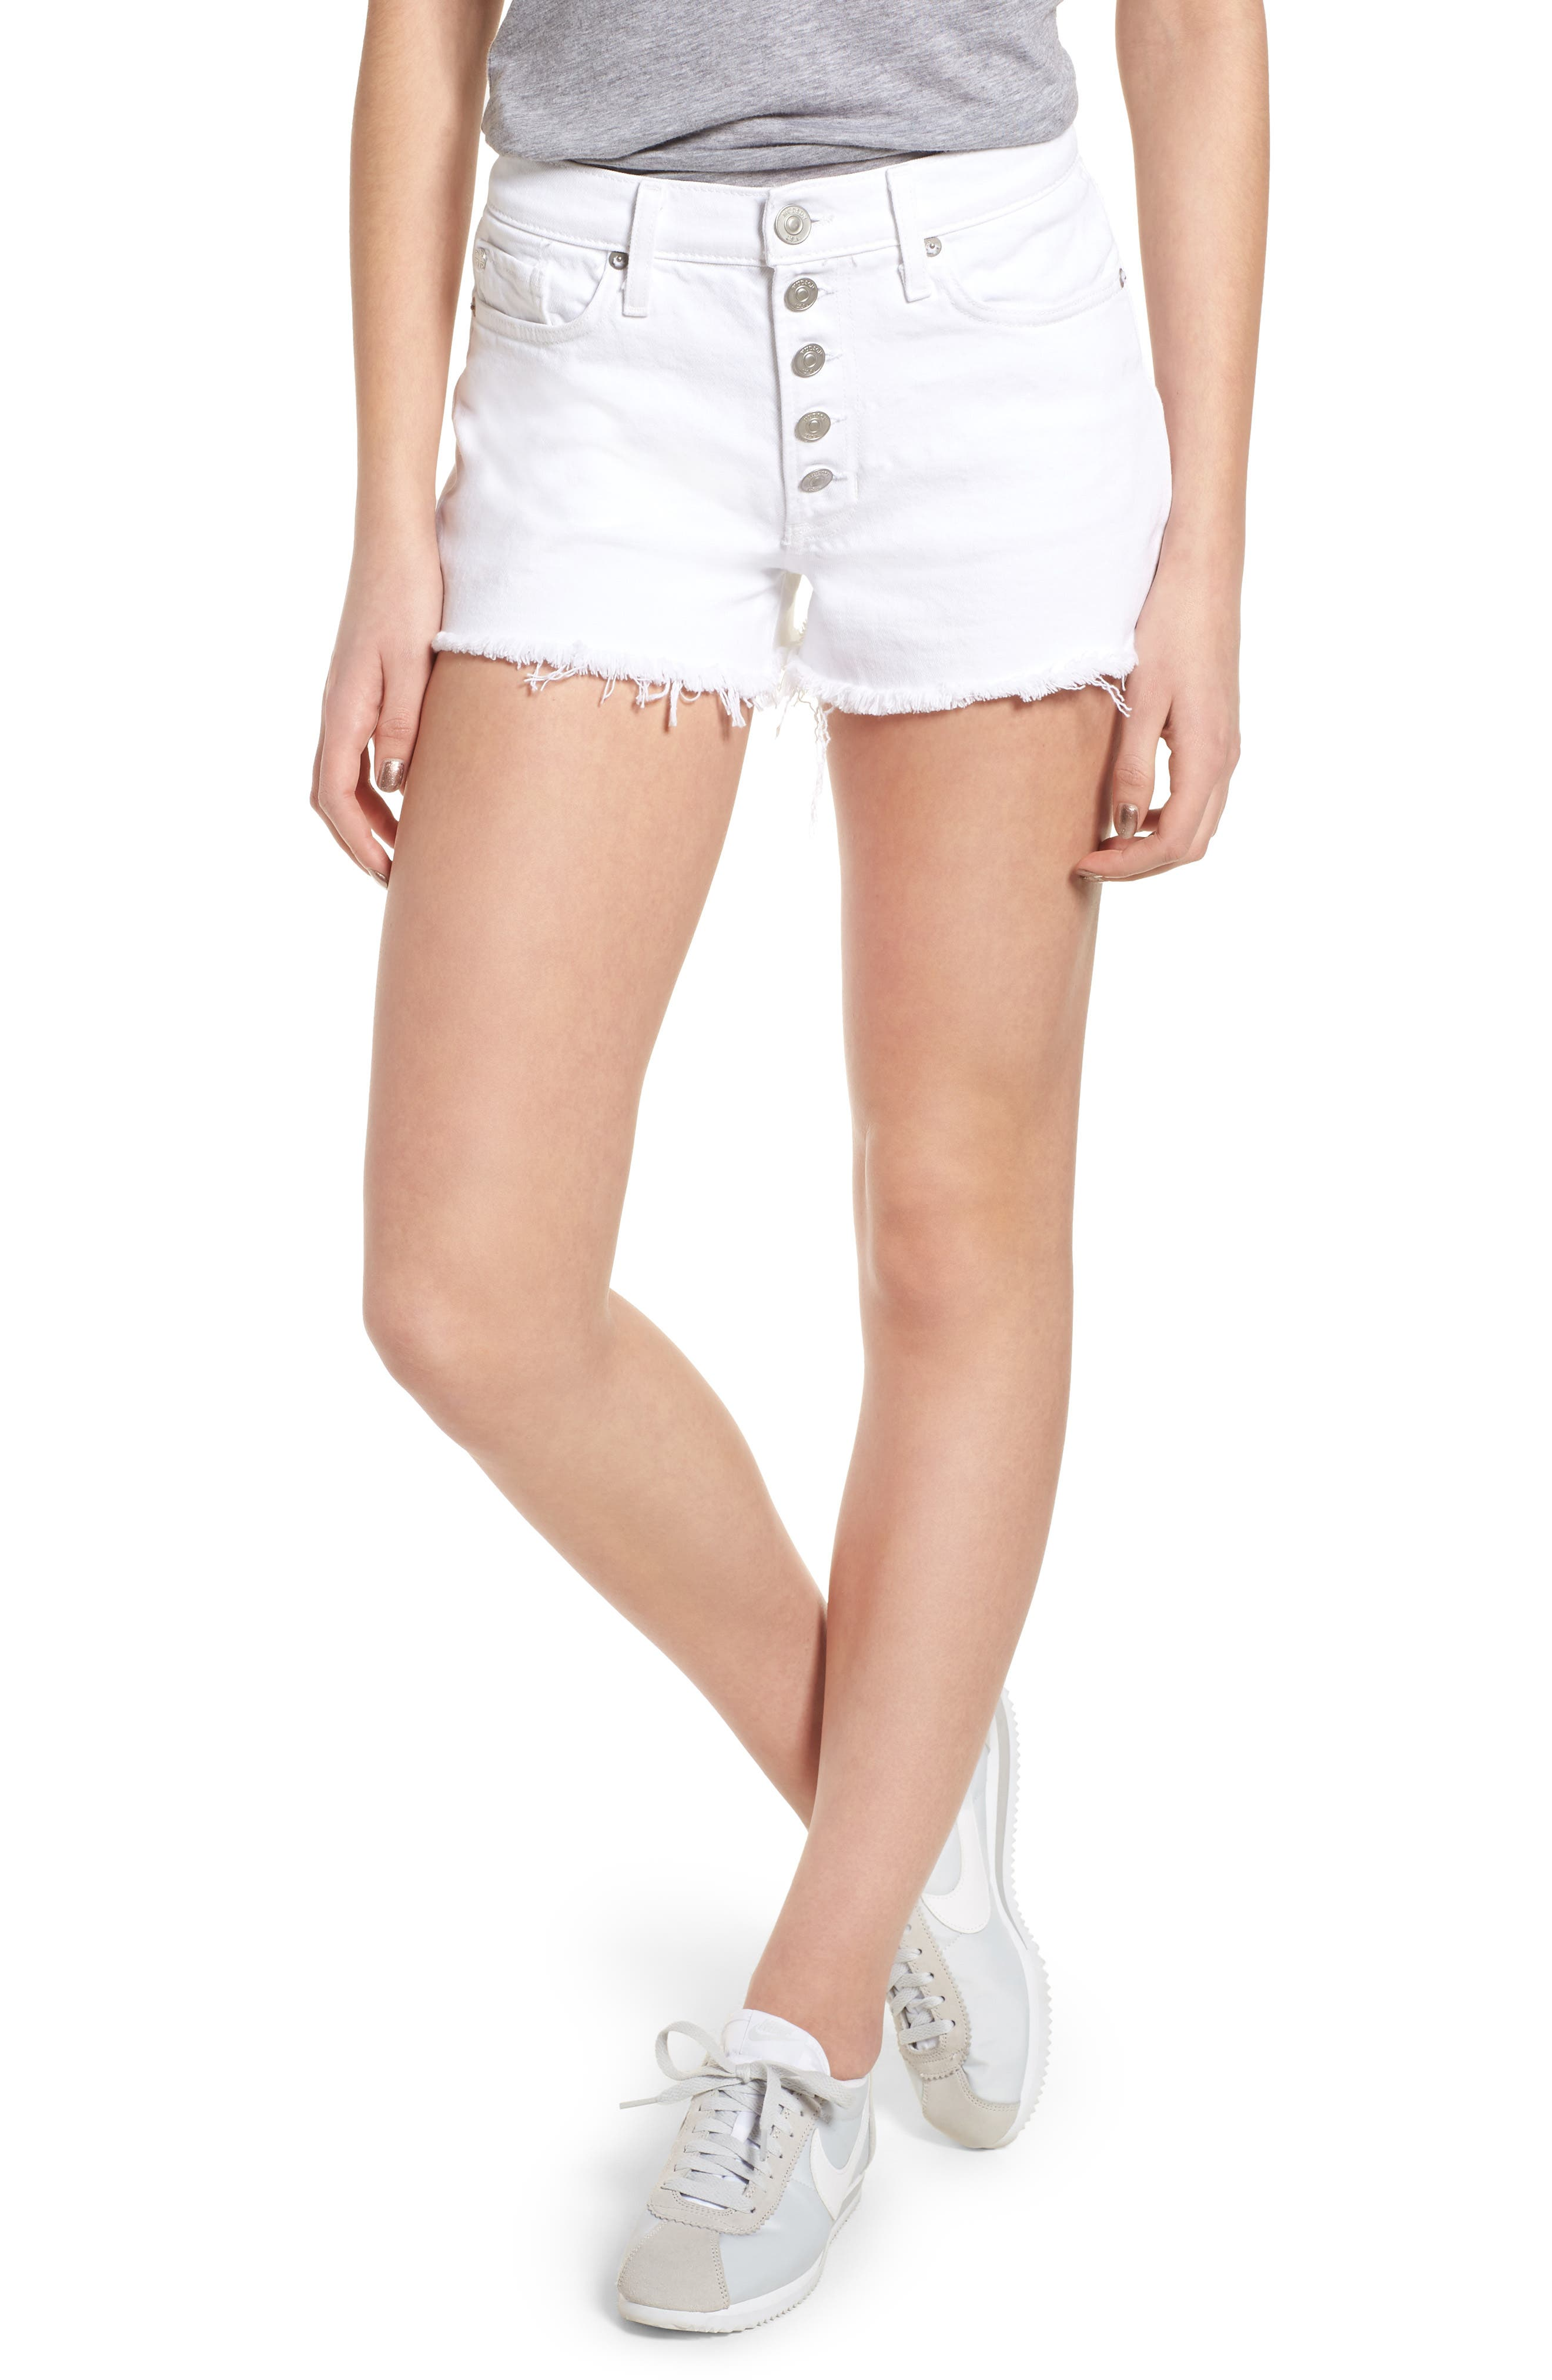 Zoeey Button Fly High Waist Denim Shorts,                         Main,                         color, 120